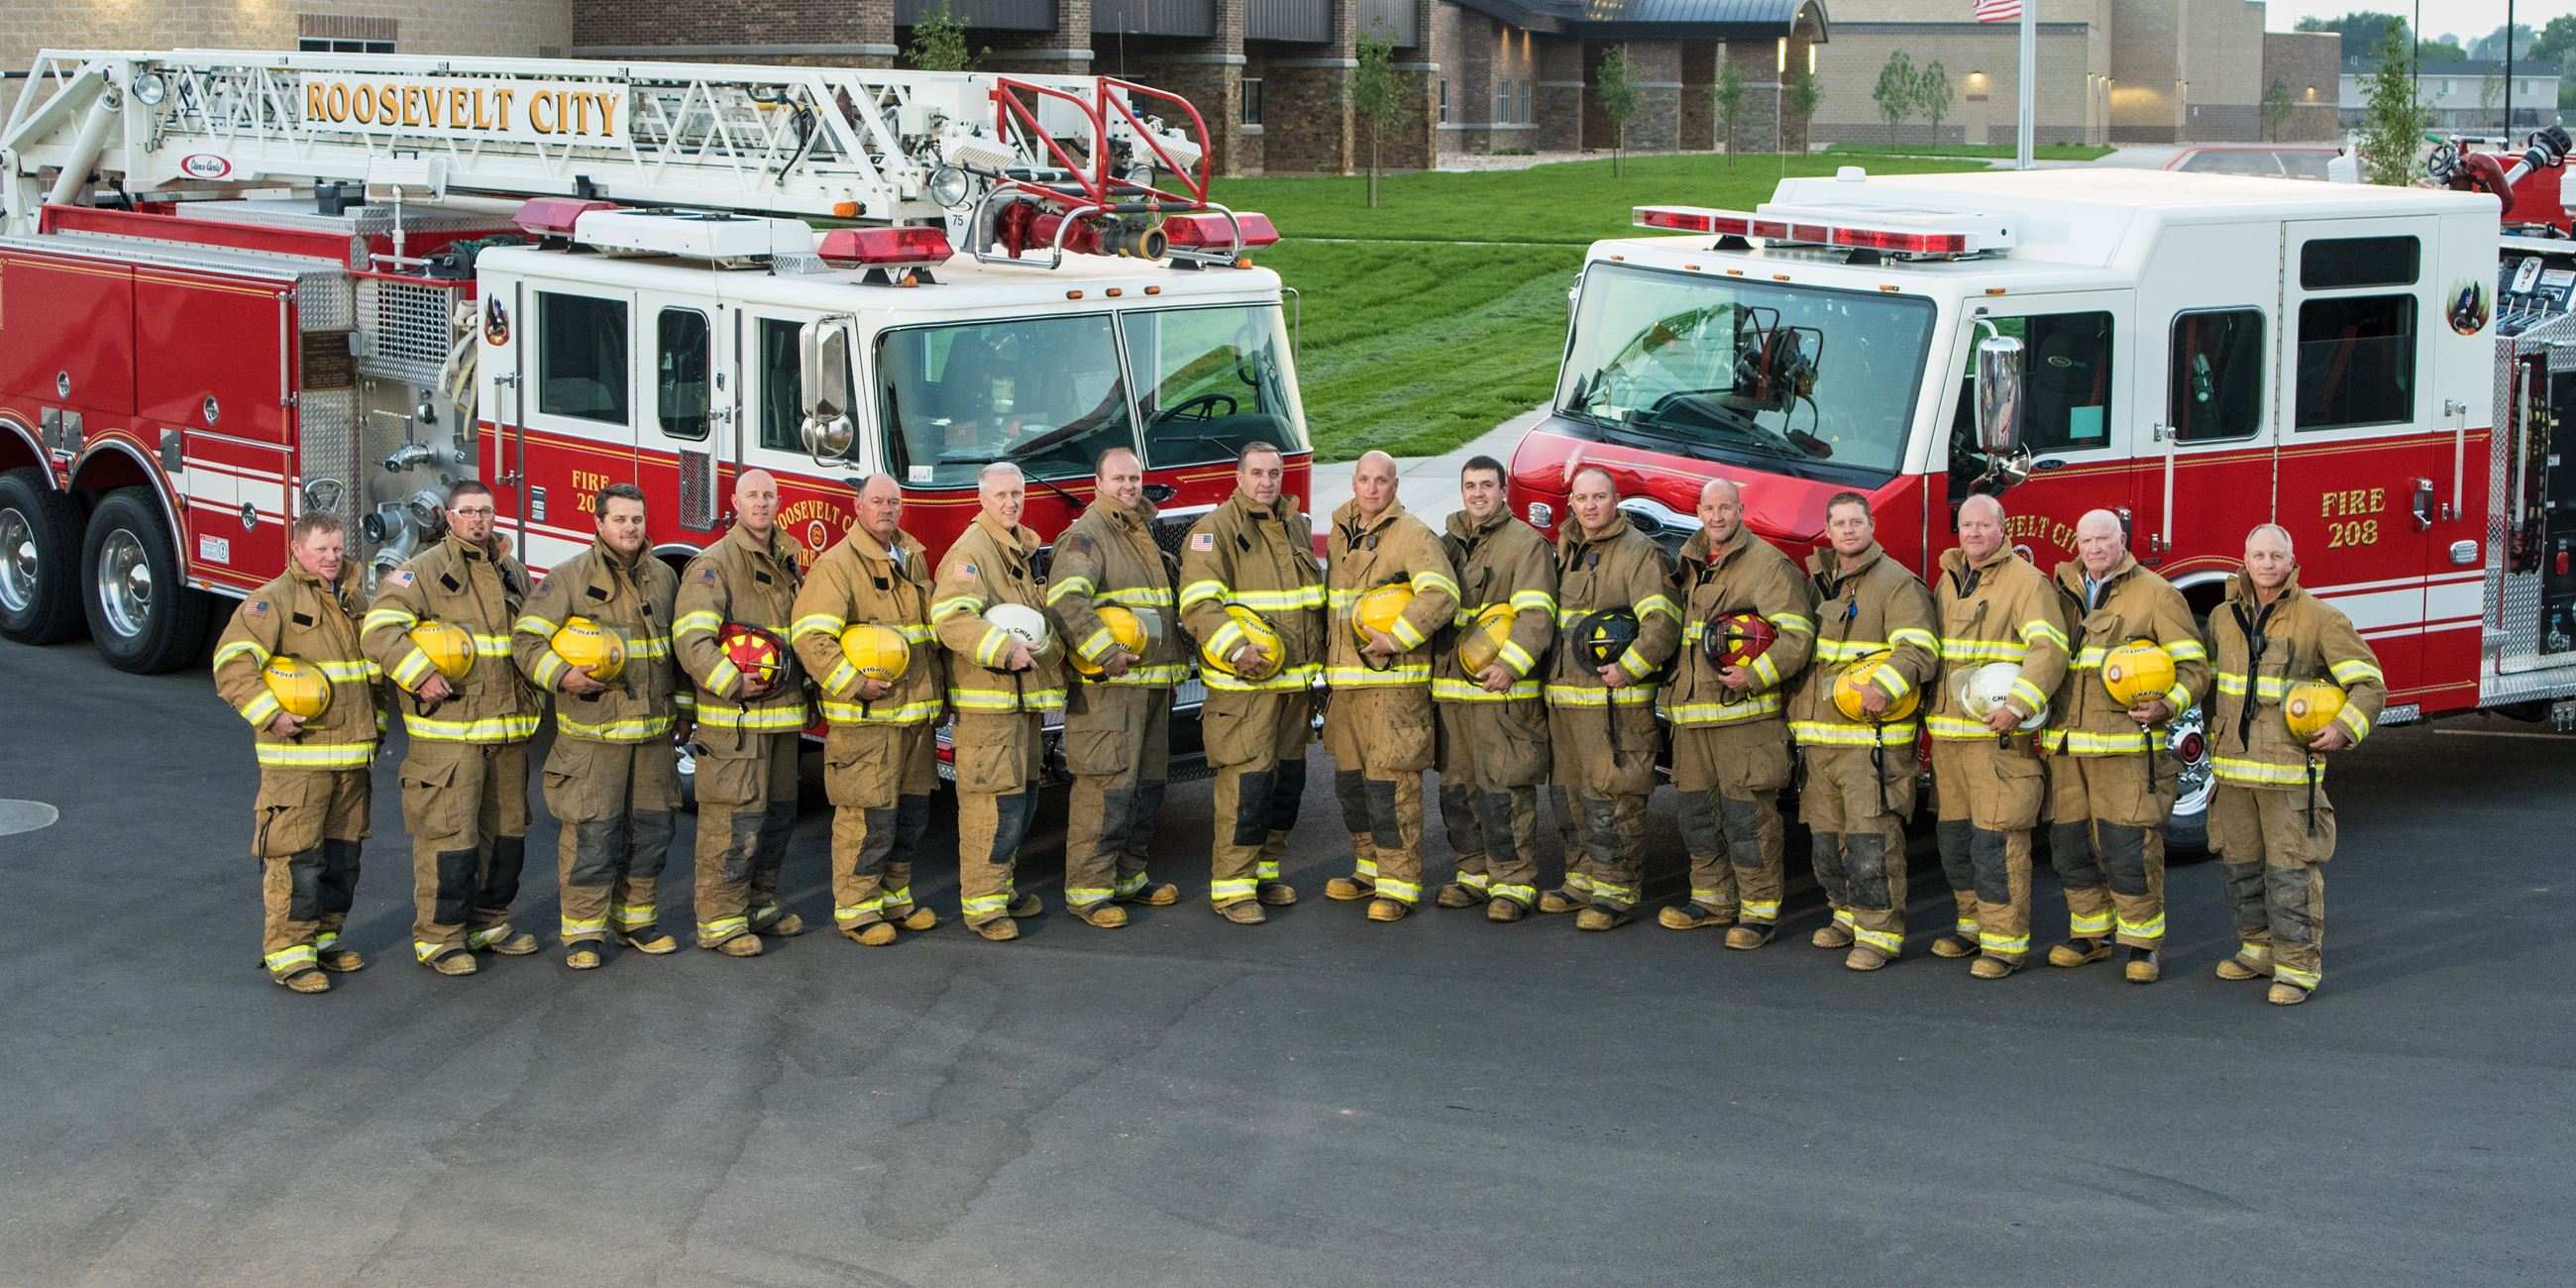 Members of the Roosevelt Fire Department pictured with two fire trucks in the summer of 2019